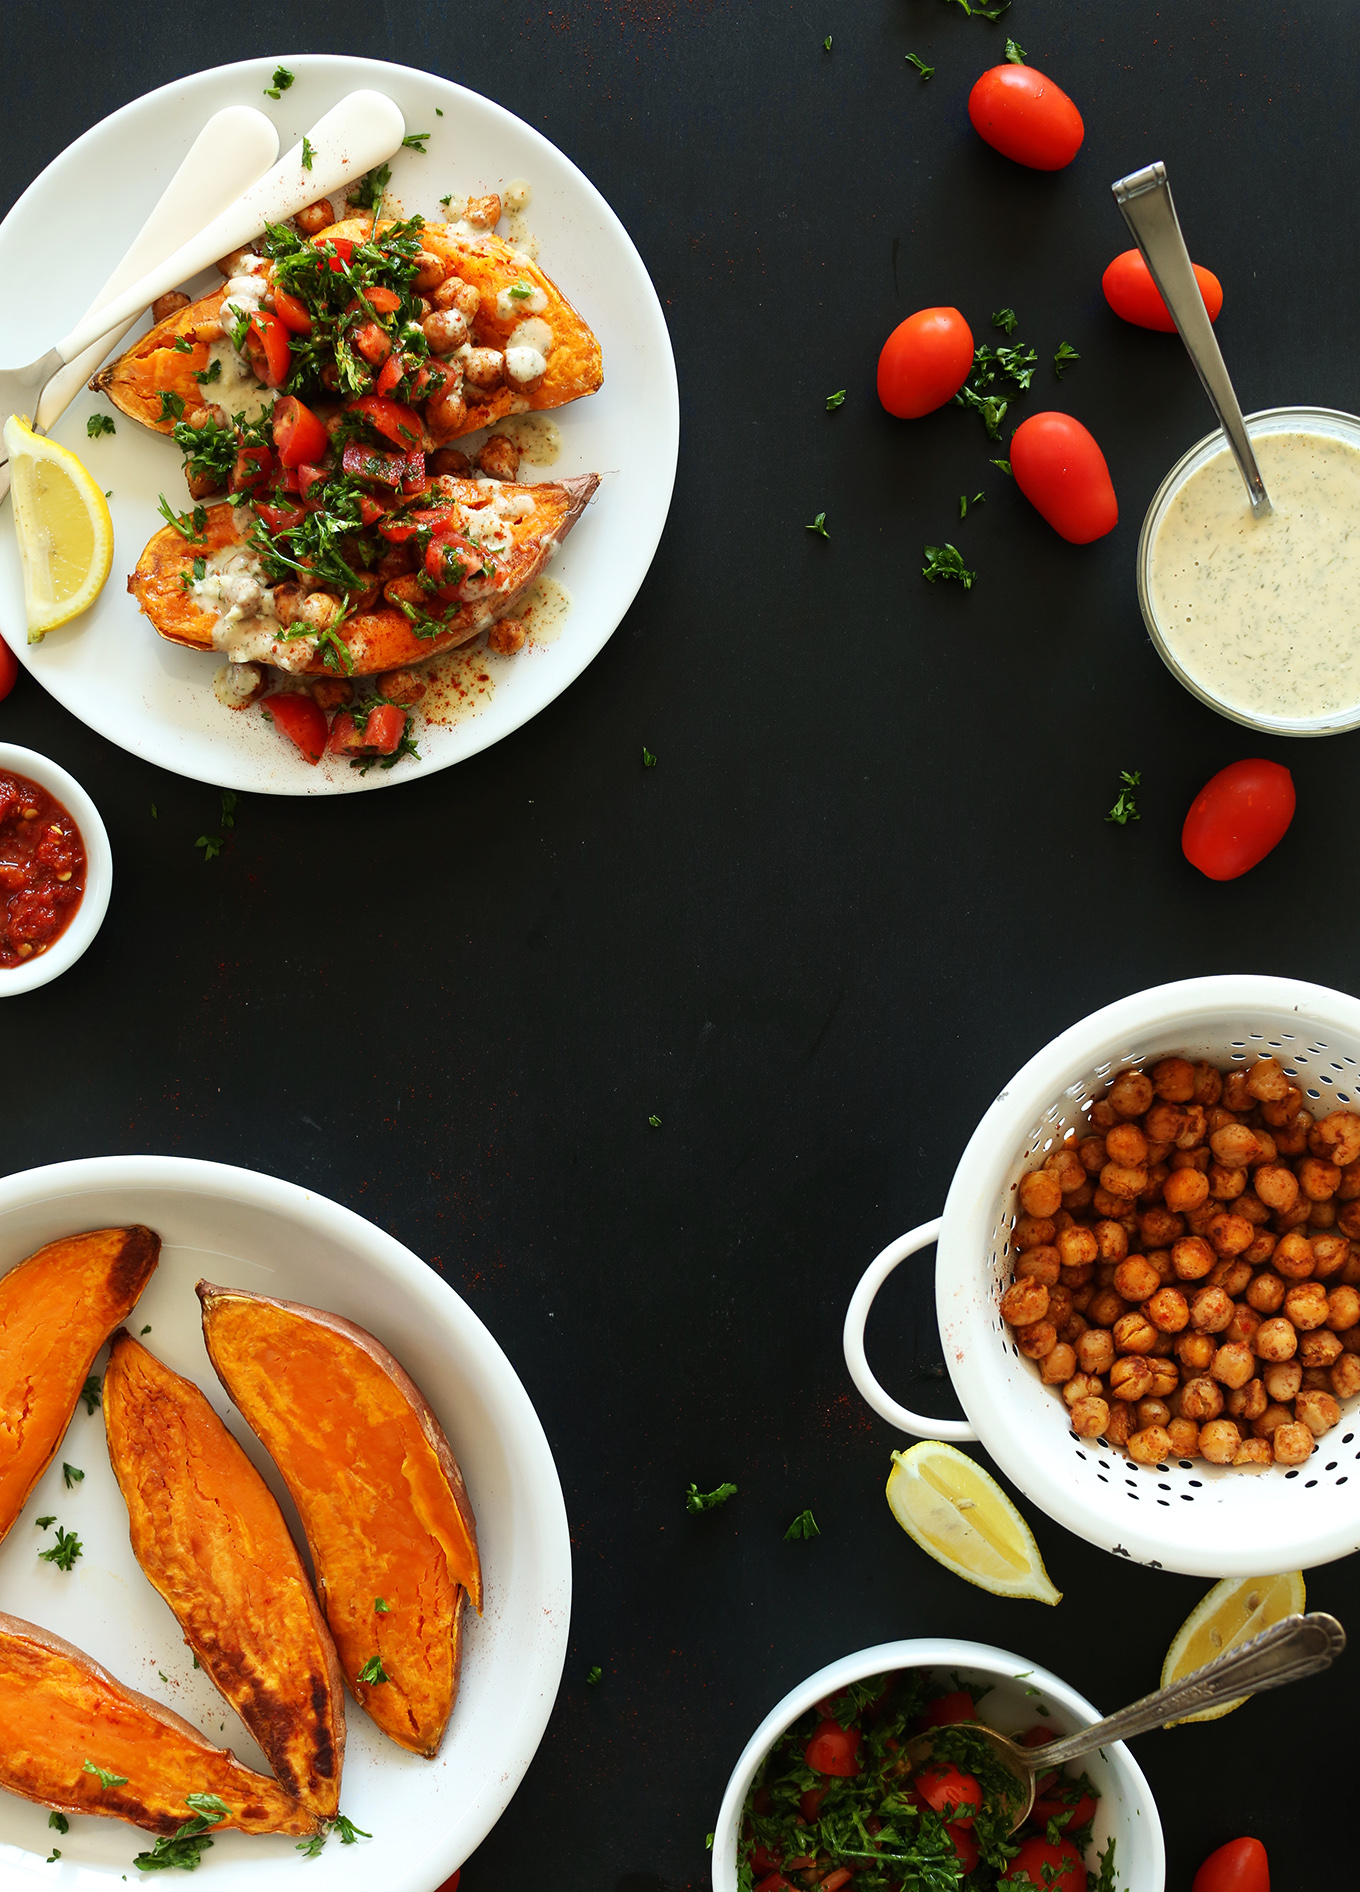 Plate of gluten-free vegan Mediterranean Baked Sweet Potatoes alongside ingredients for making them